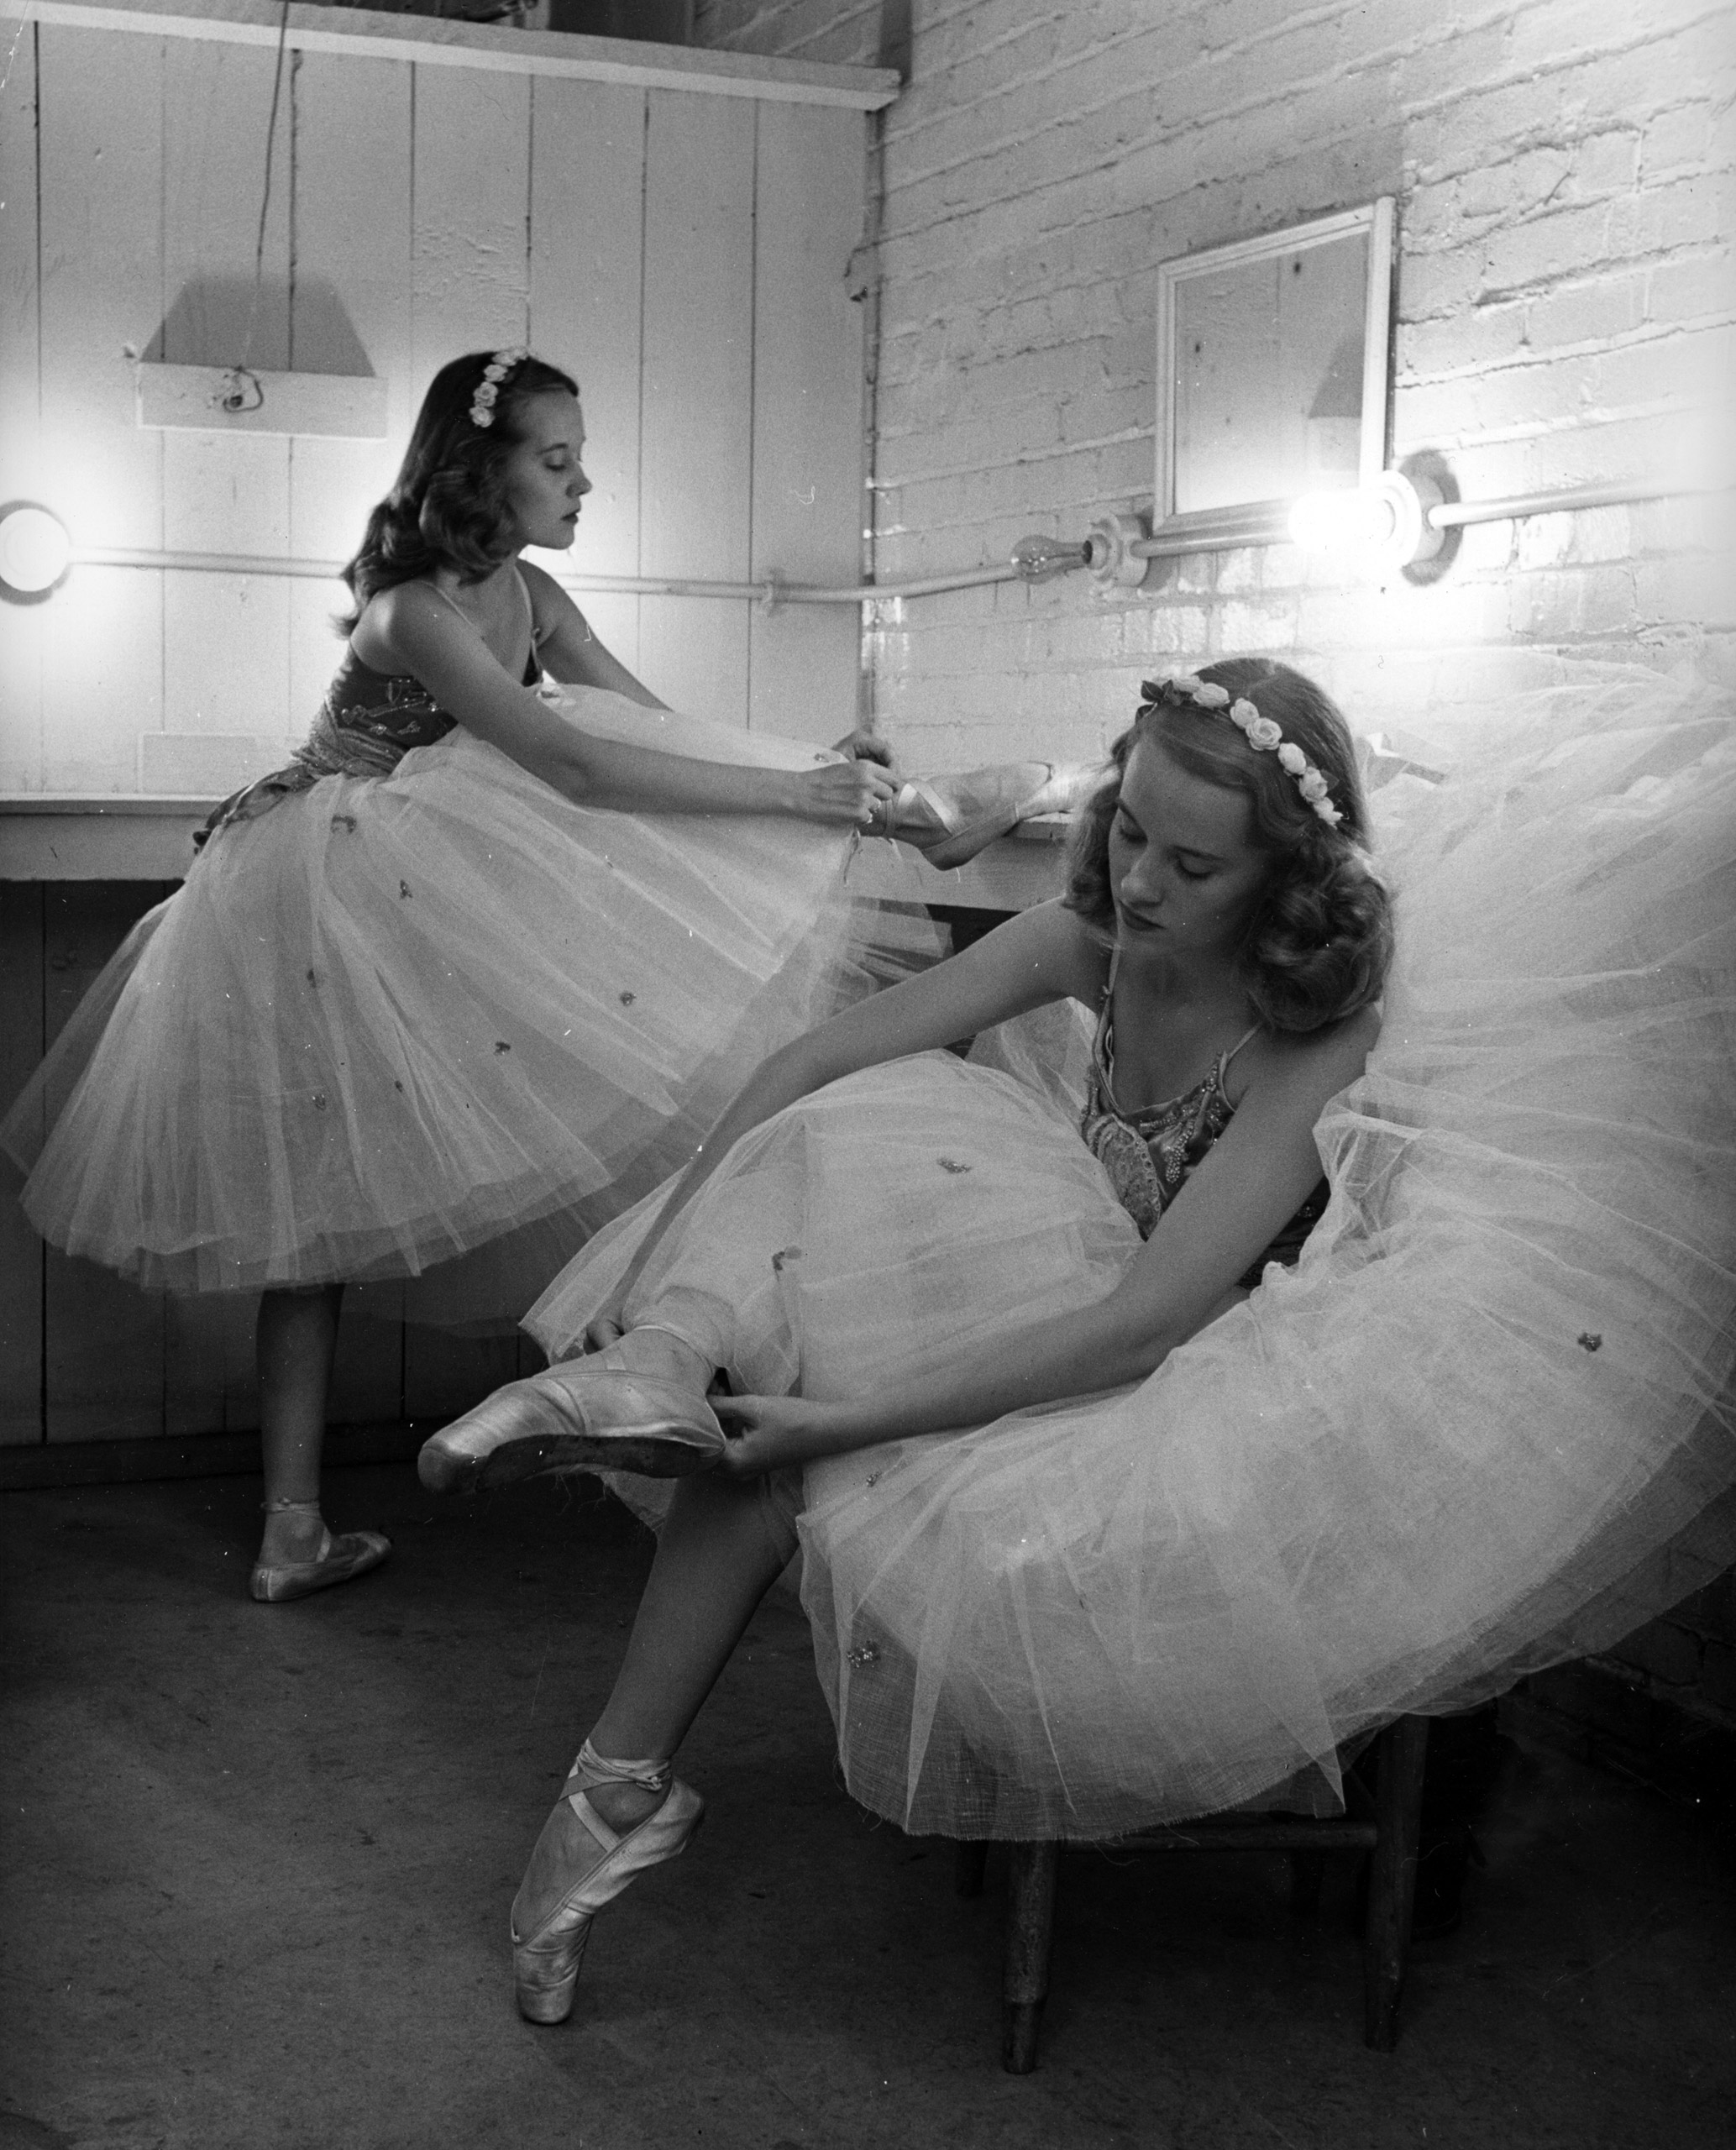 The Bounds sisters get ready for ballet class.